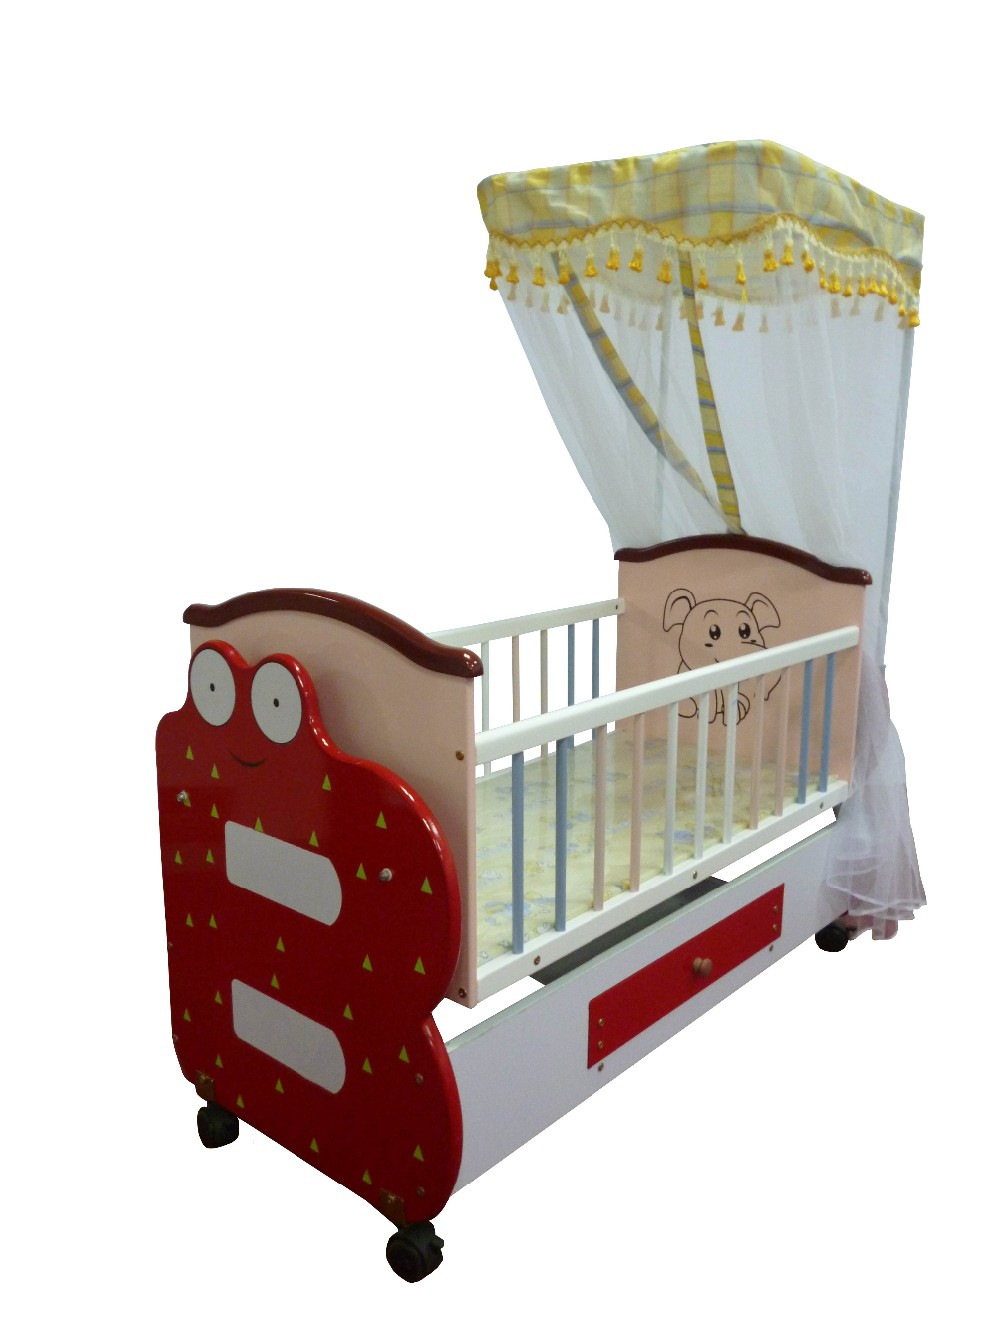 2017 hot sale baby bed with cradle mosquito net buy baby for Cradle bed for adults